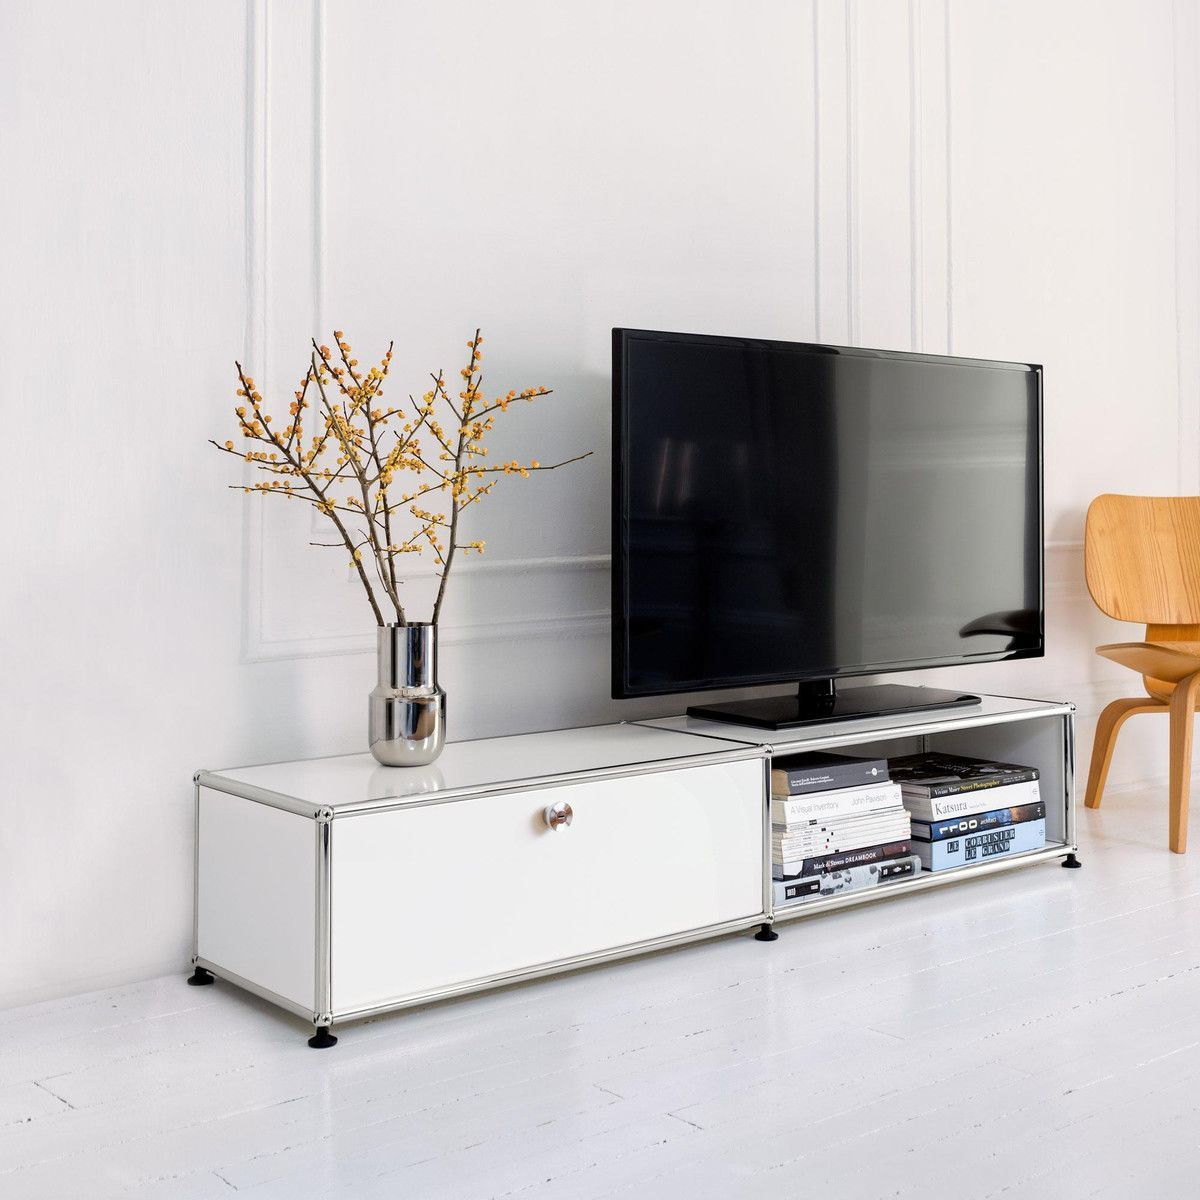 usm haller tv board elegant usm haller tvboard sideboard. Black Bedroom Furniture Sets. Home Design Ideas